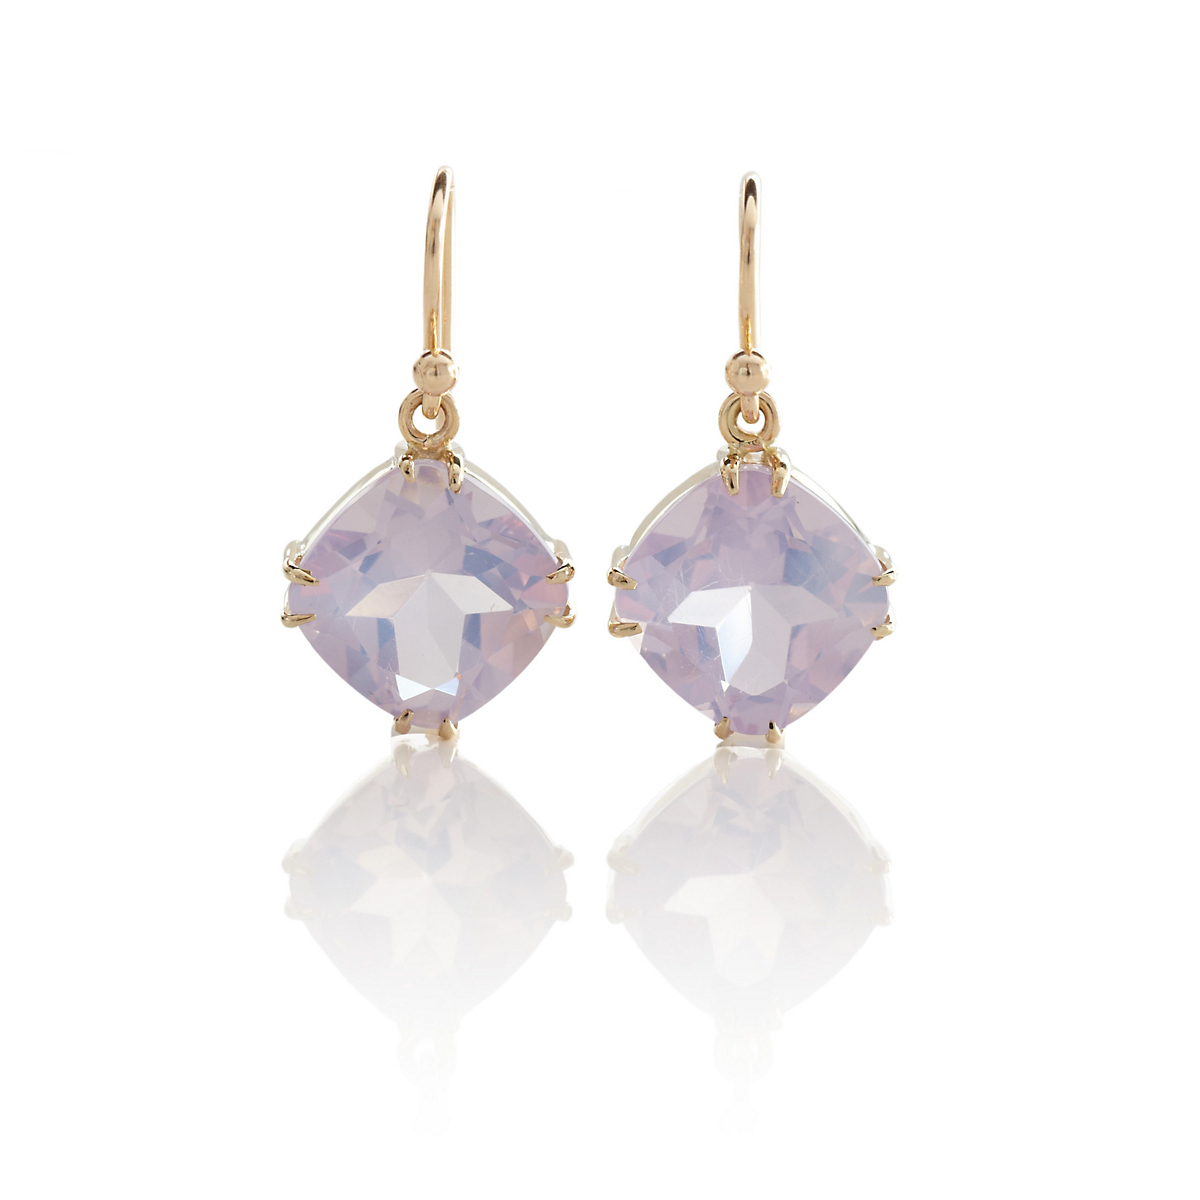 Gump's Lilac Quartz Drop Earrings